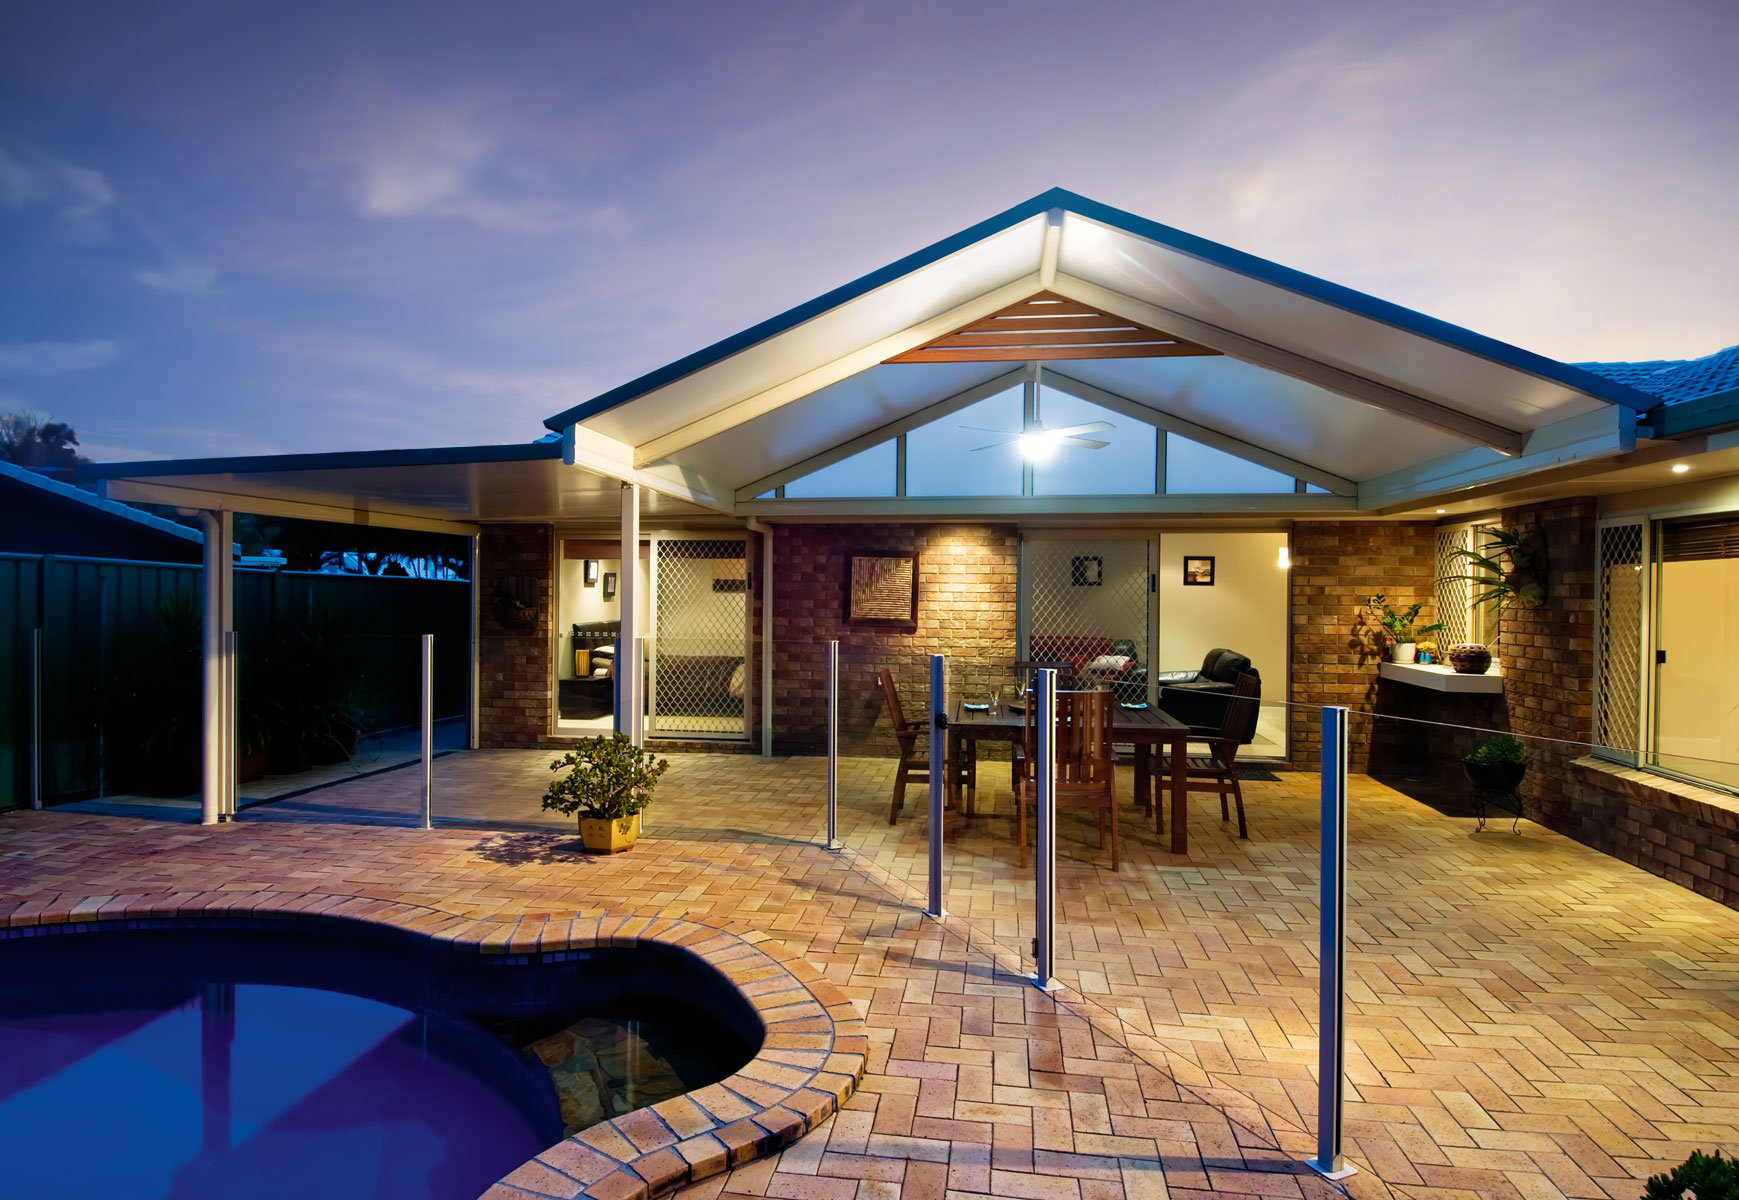 Cooldek Cgi Topside Smooth Underside Right Laying 50mm Thick 65mm Wiring Outdoor Lights Australia Image Gallery